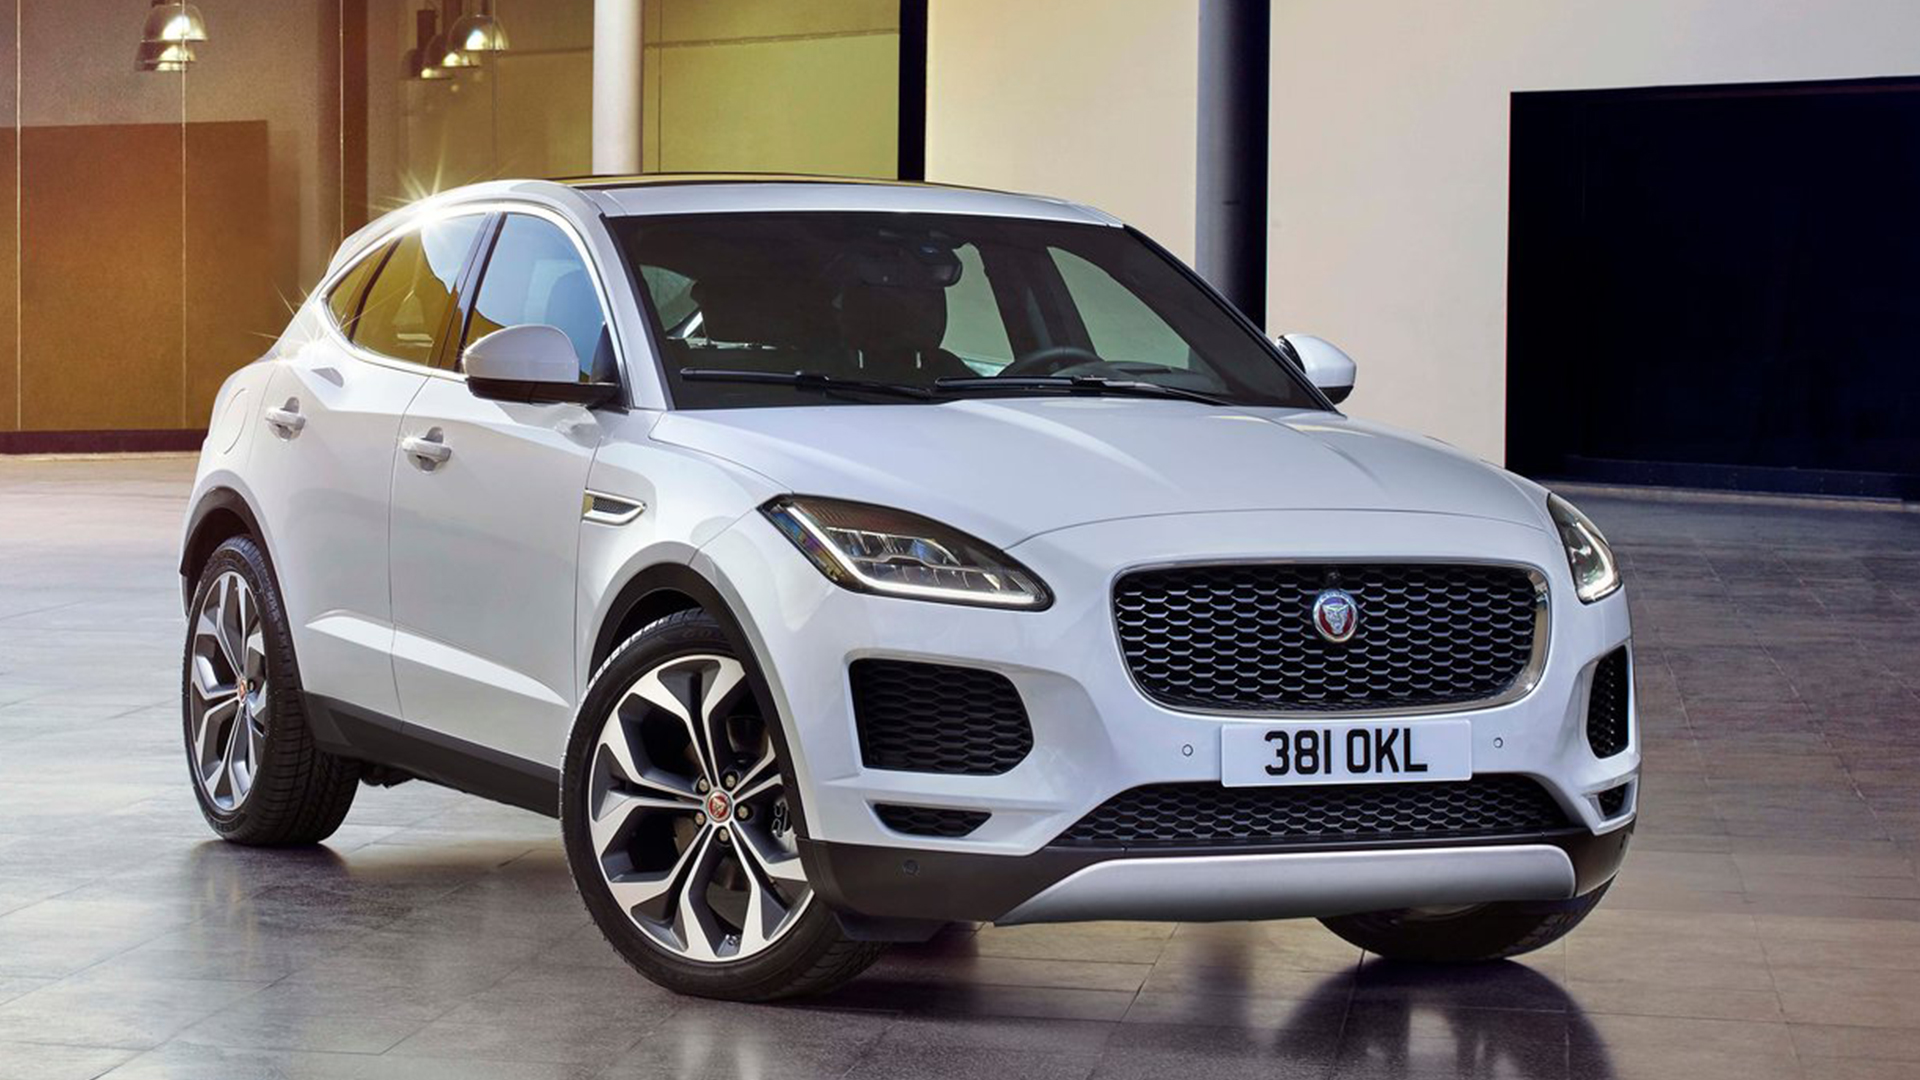 Jaguar E-Pace 2018 STD